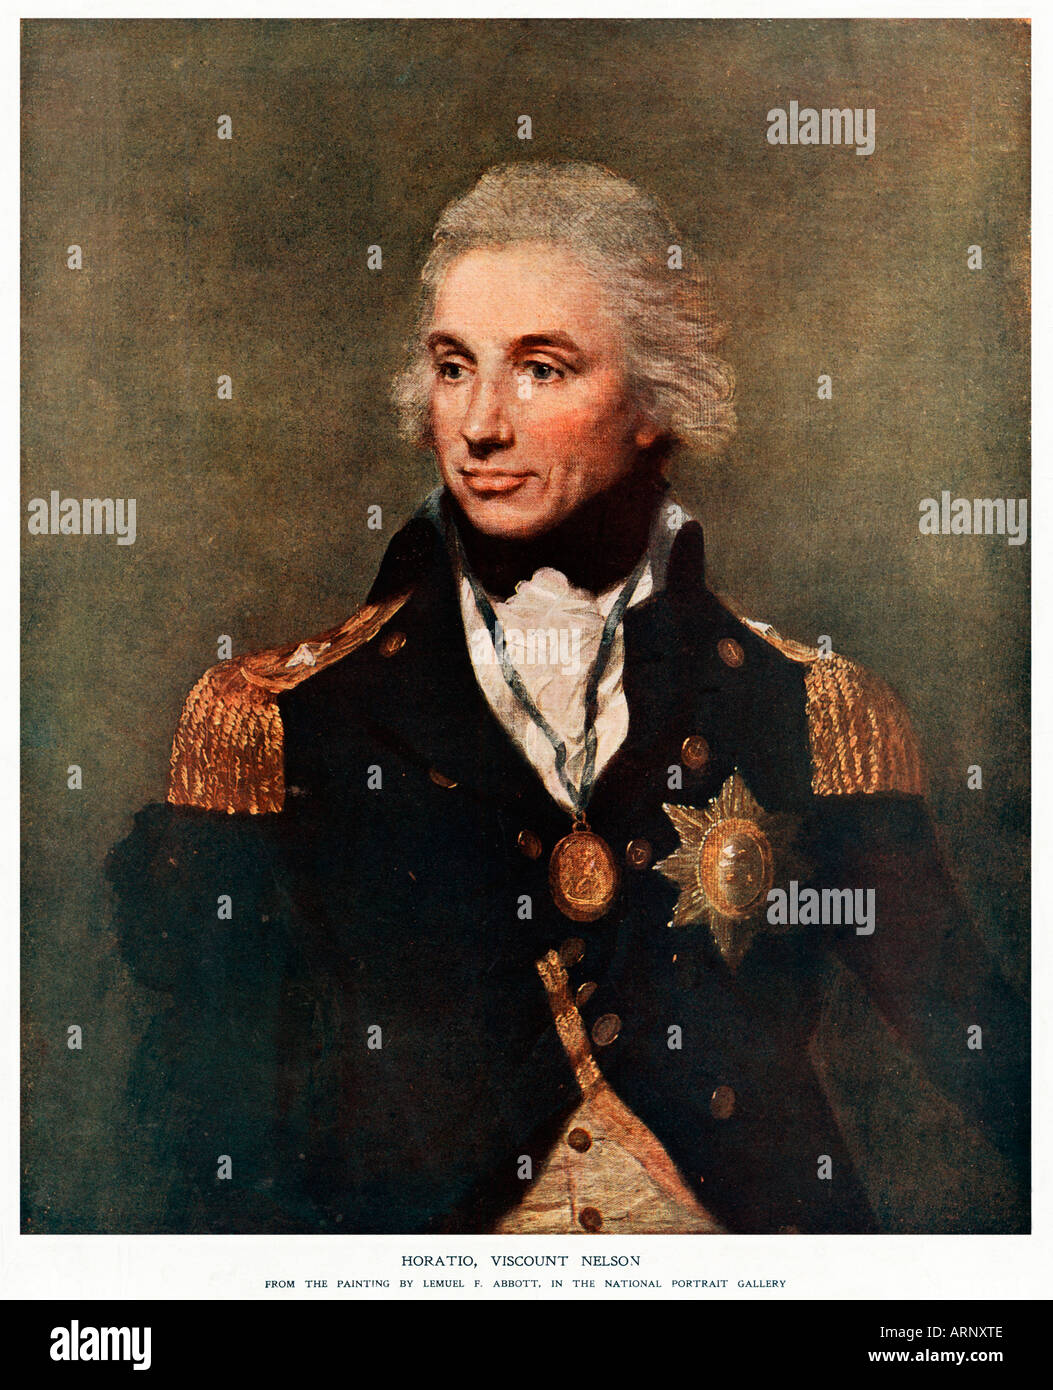 Admiral Lord Nelson Englands Naval Hero In The Famous Portrait By Lemuel F Abbott